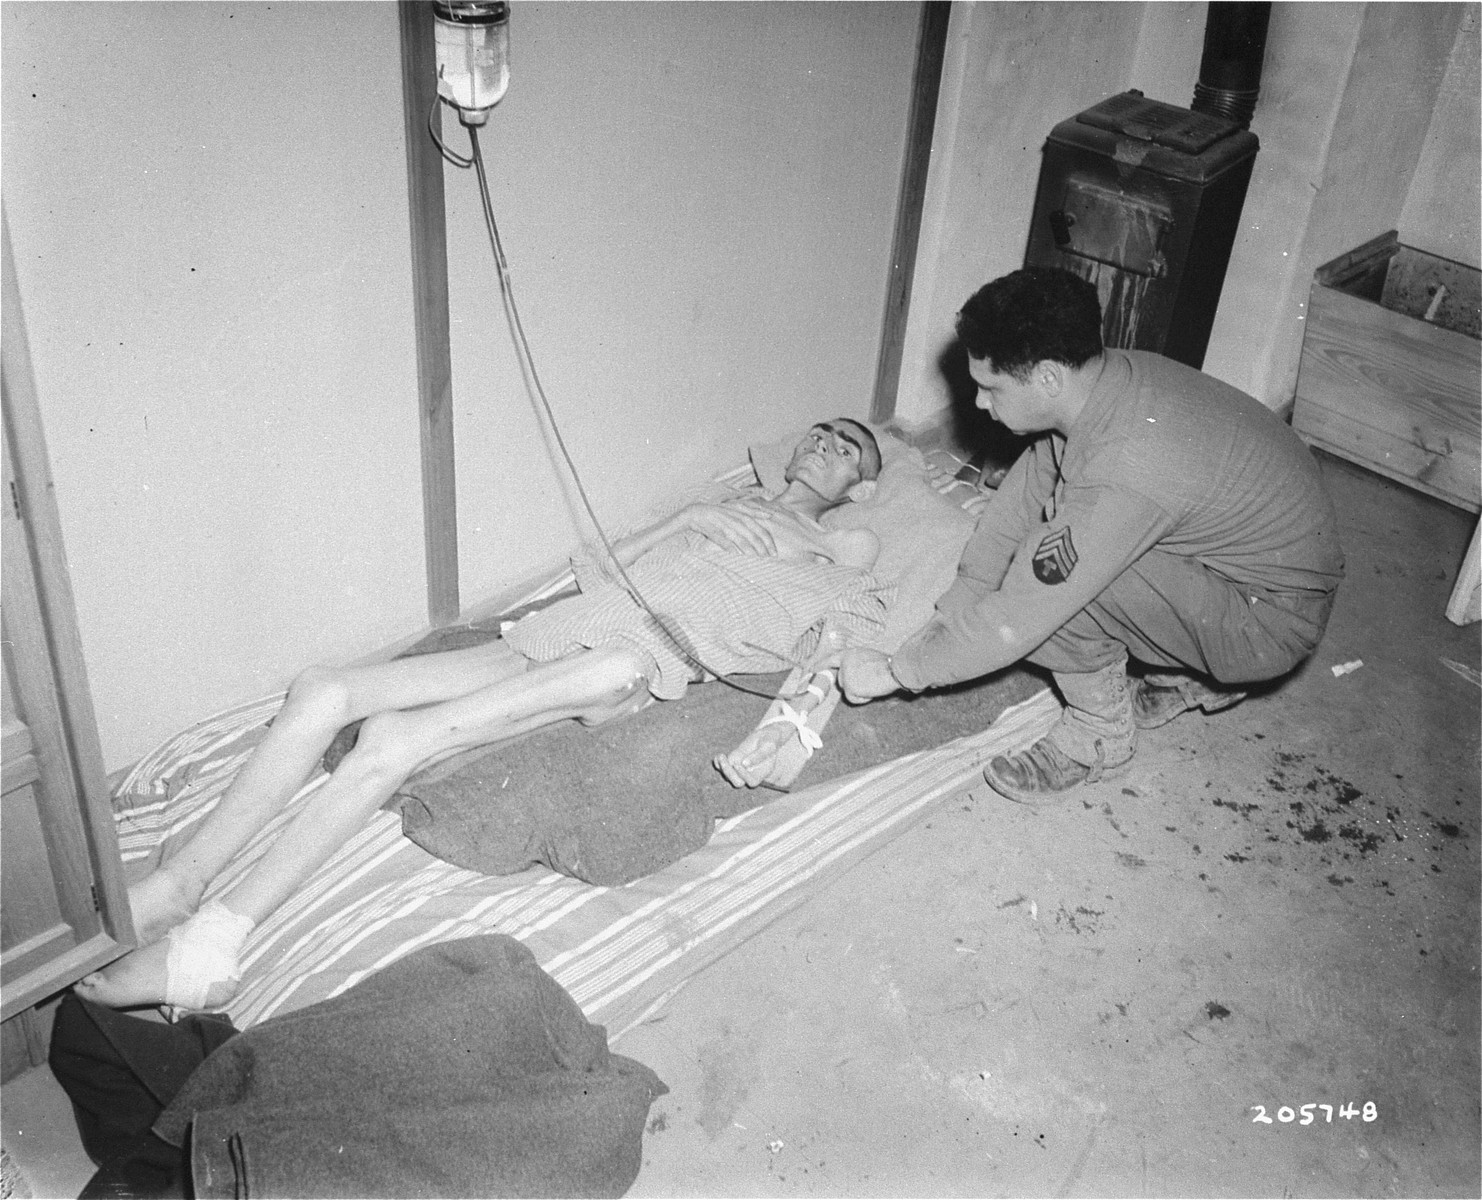 Sargeant Joseph Perlman, of the U.S. Third Army, oversees the intravenous system that feeds this Jewish survivor.